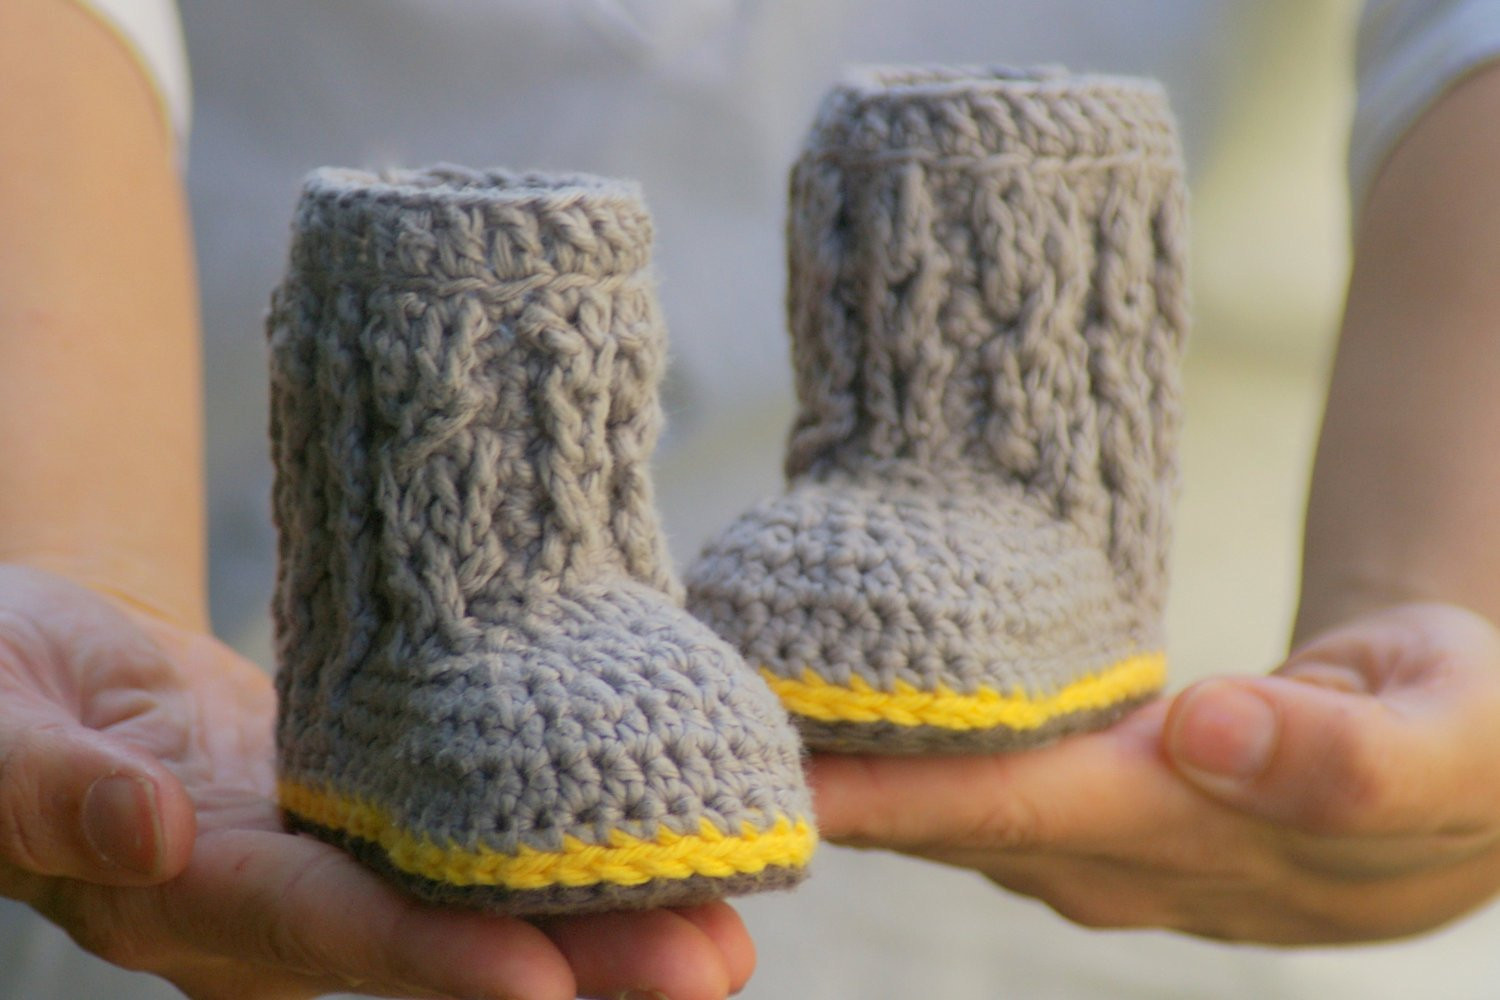 Crochet Cables Unique Crochet Pattern for Baby Cable Boots with Easy Cables Of Amazing 48 Pics Crochet Cables